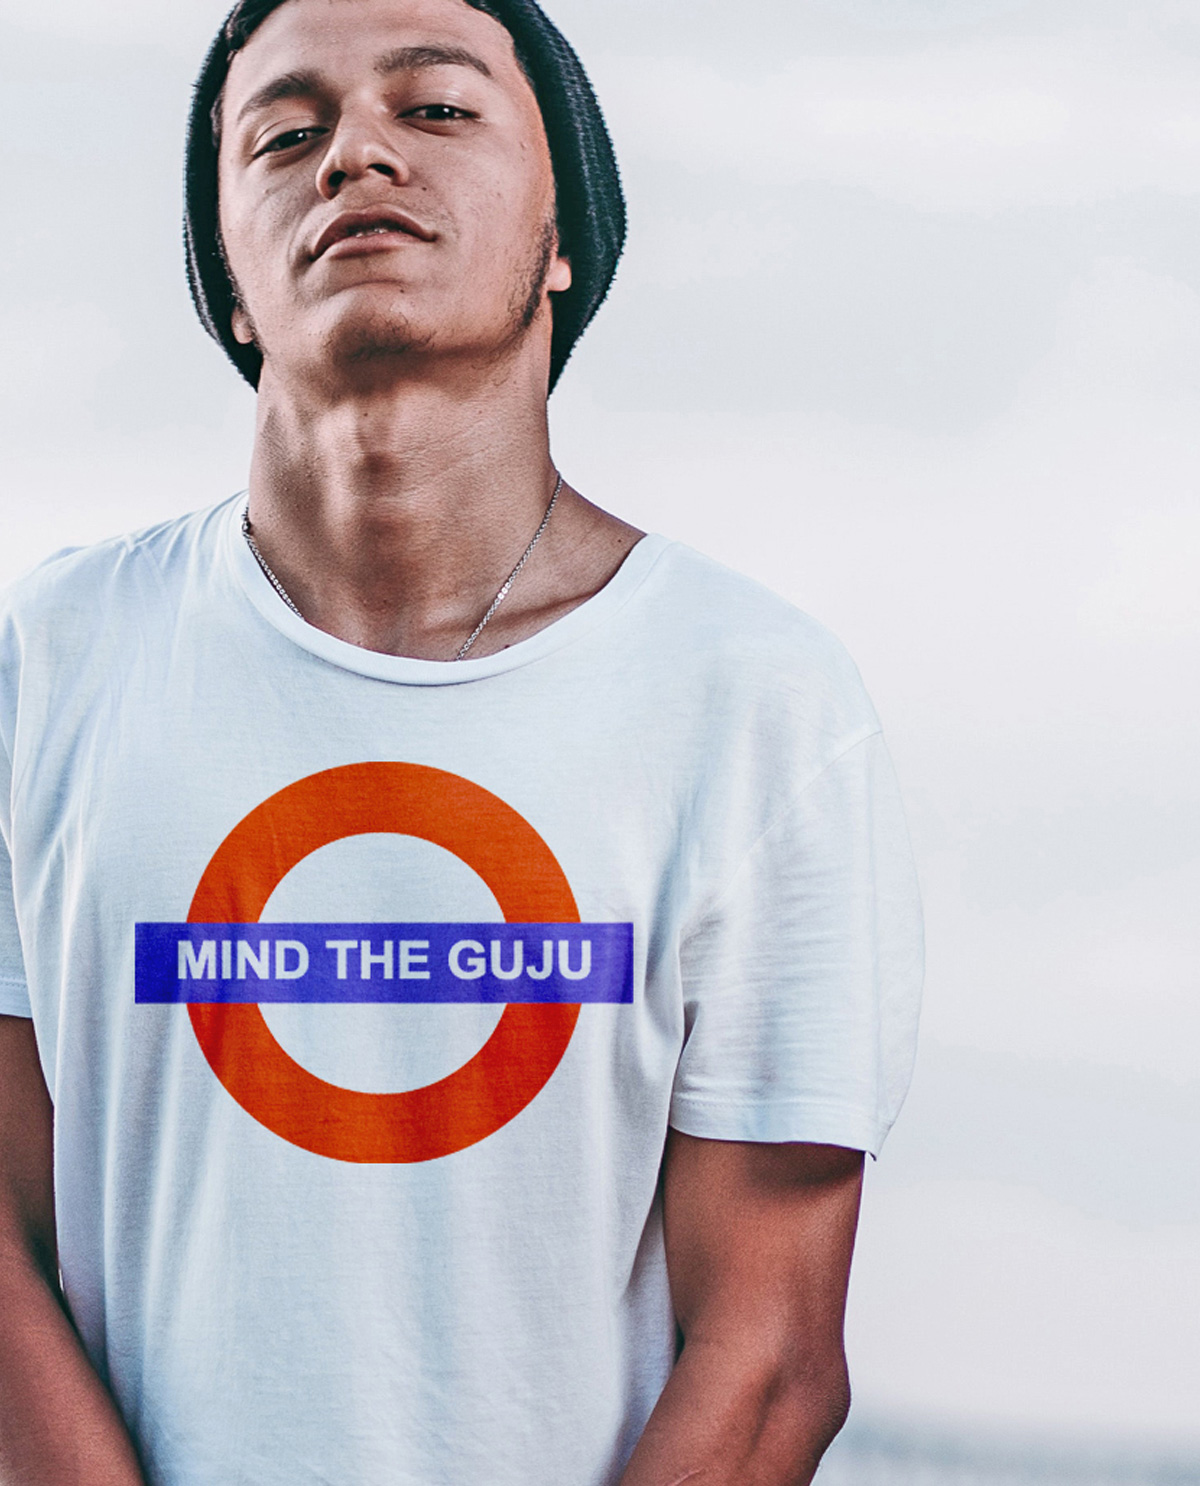 South Asian male model wearing white tshirt with graphic design print on front that says Mind The Guju